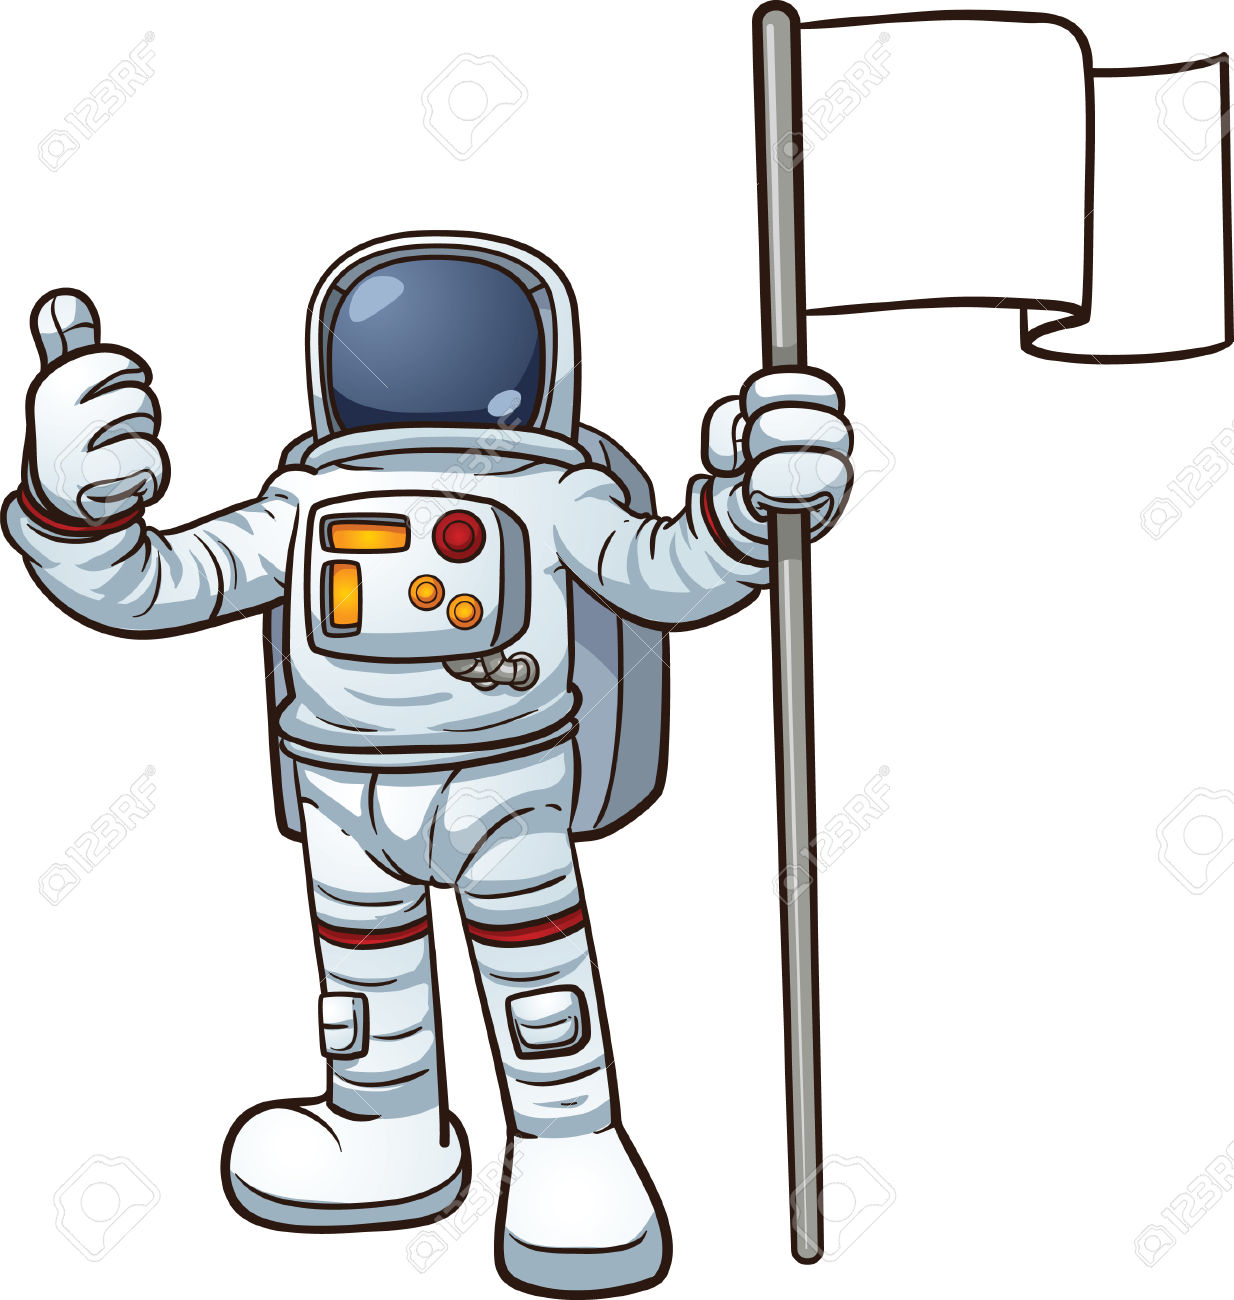 Astronaut clipart #2, Download drawings